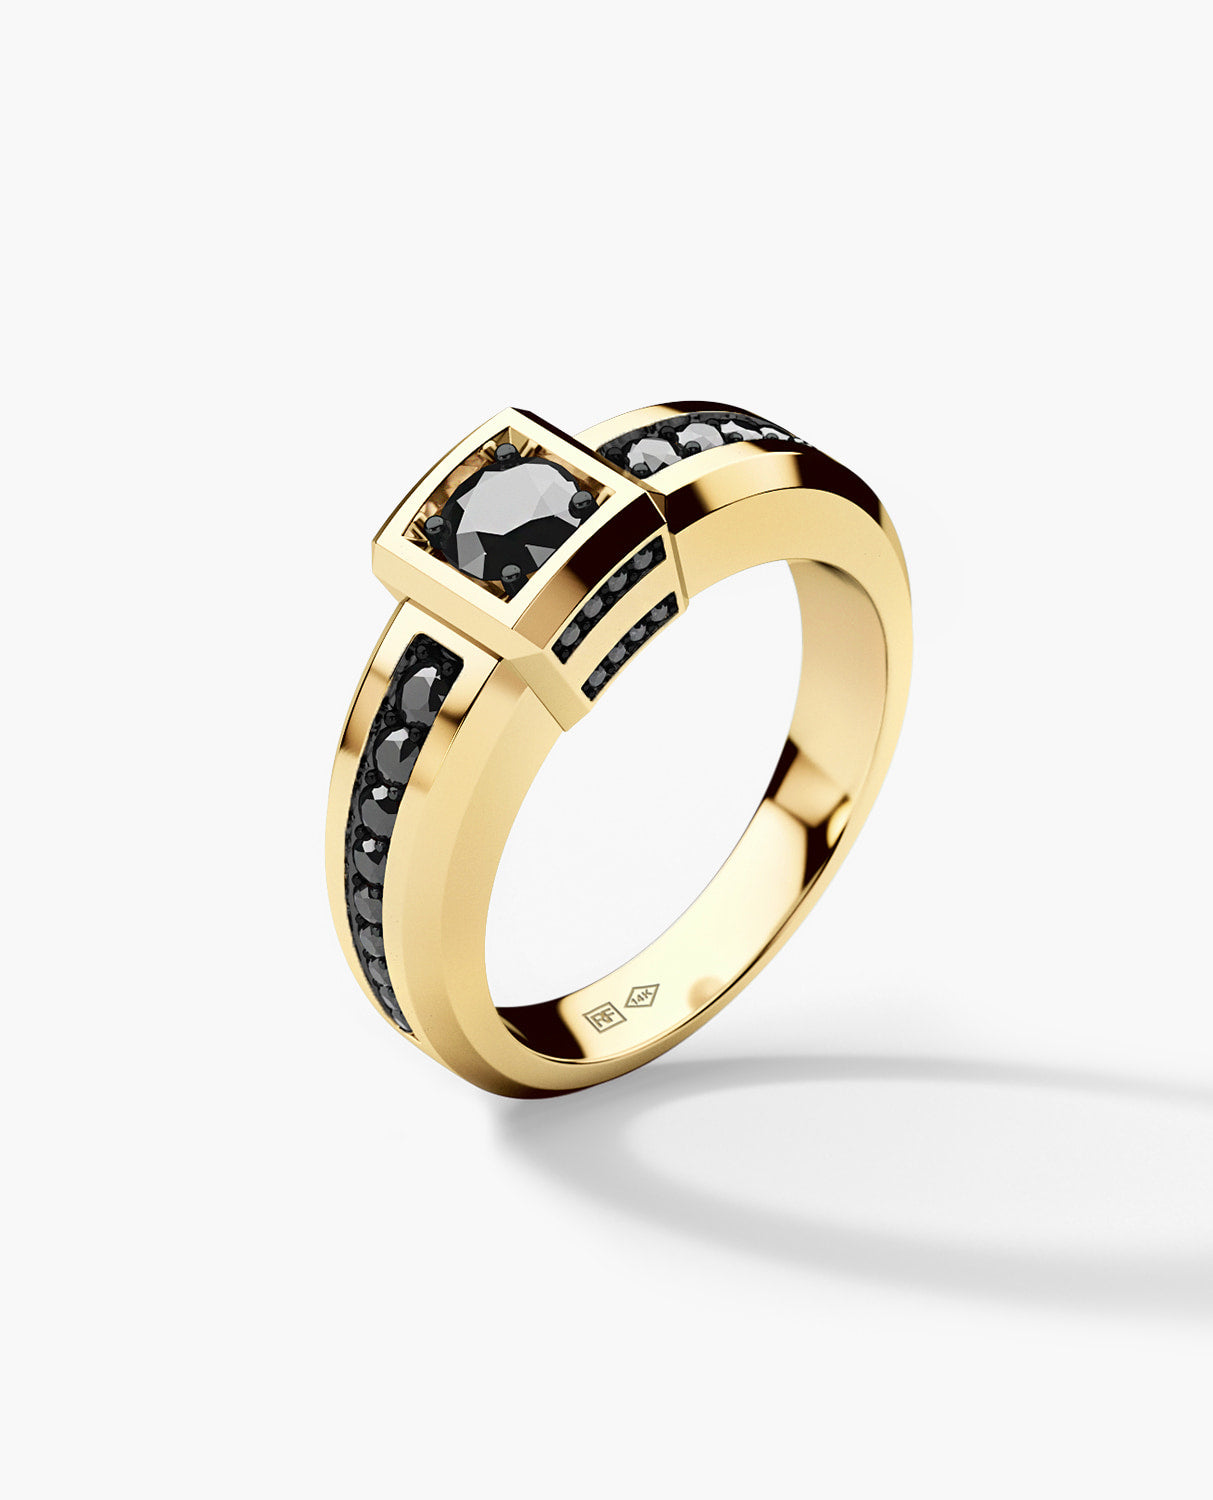 VULTURE Mens Gold Wedding Ring with 0.90 ct Black Diamonds